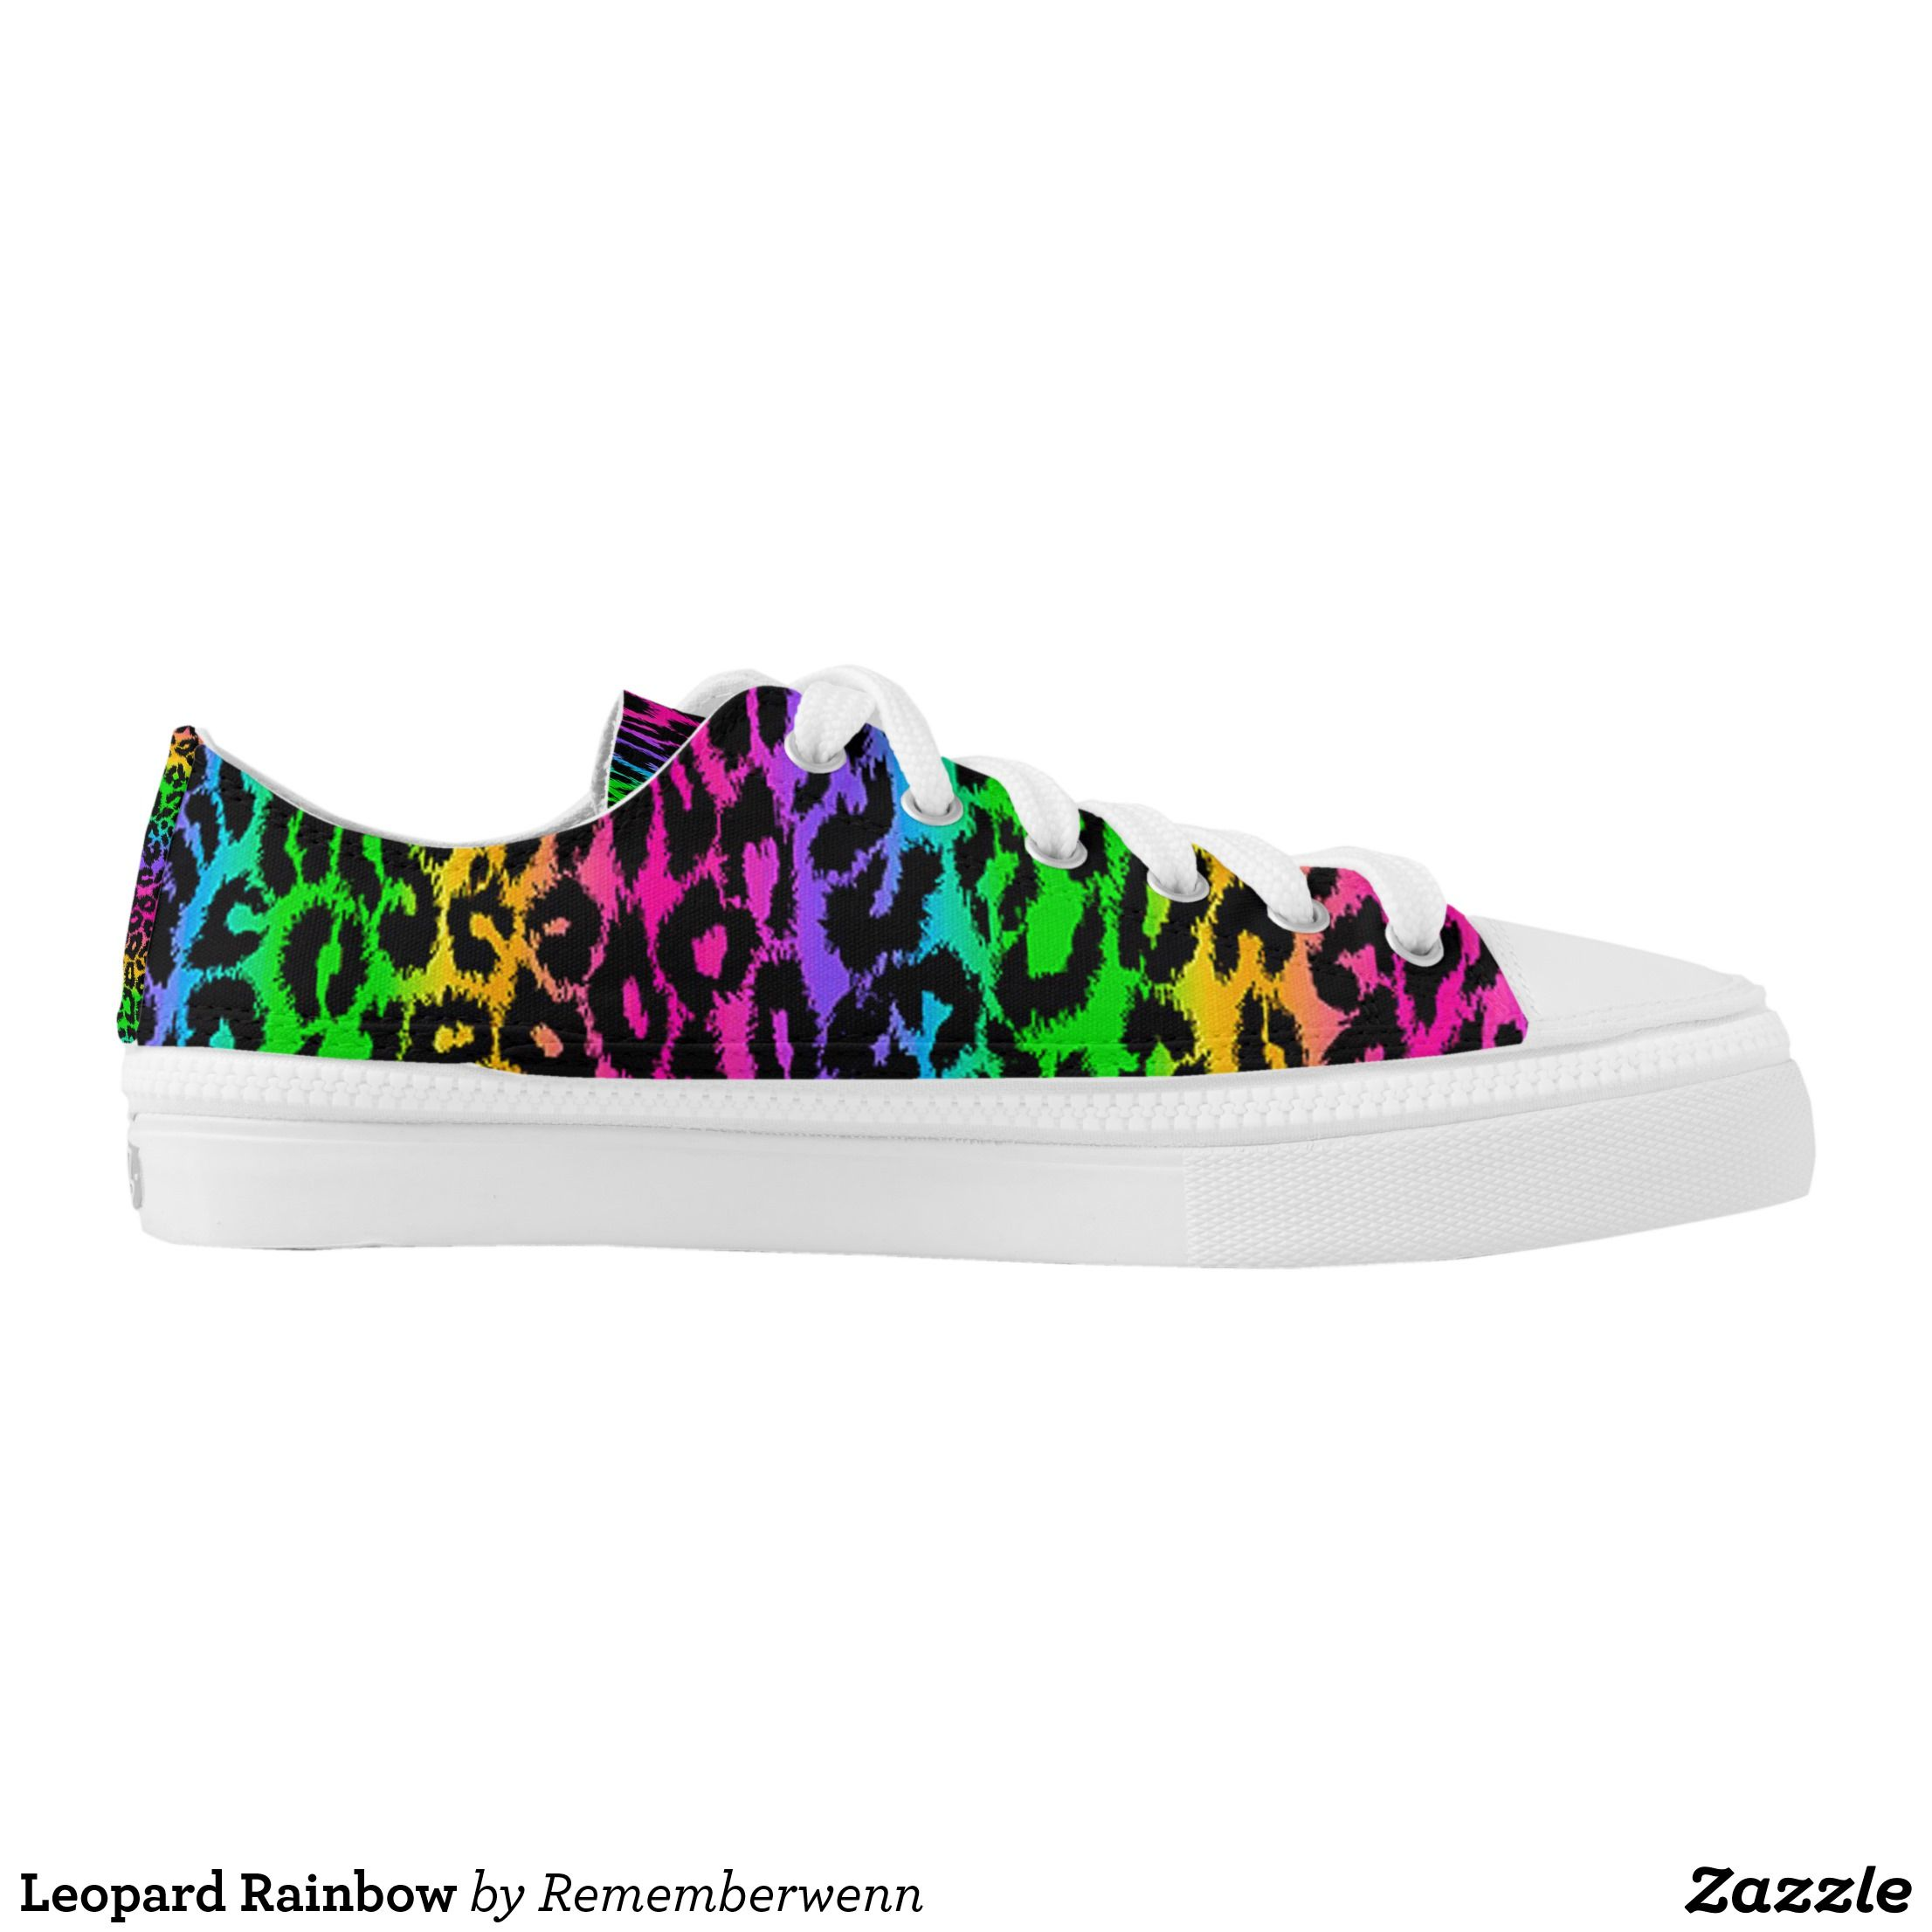 e1903f512534 Leopard Rainbow Low-Top Sneakers - Canvas-Top Rubber-Sole Athletic Shoes By  Talented Fashion And Graphic Designers - #shoes #sneakers #footwear  #mensfashion ...